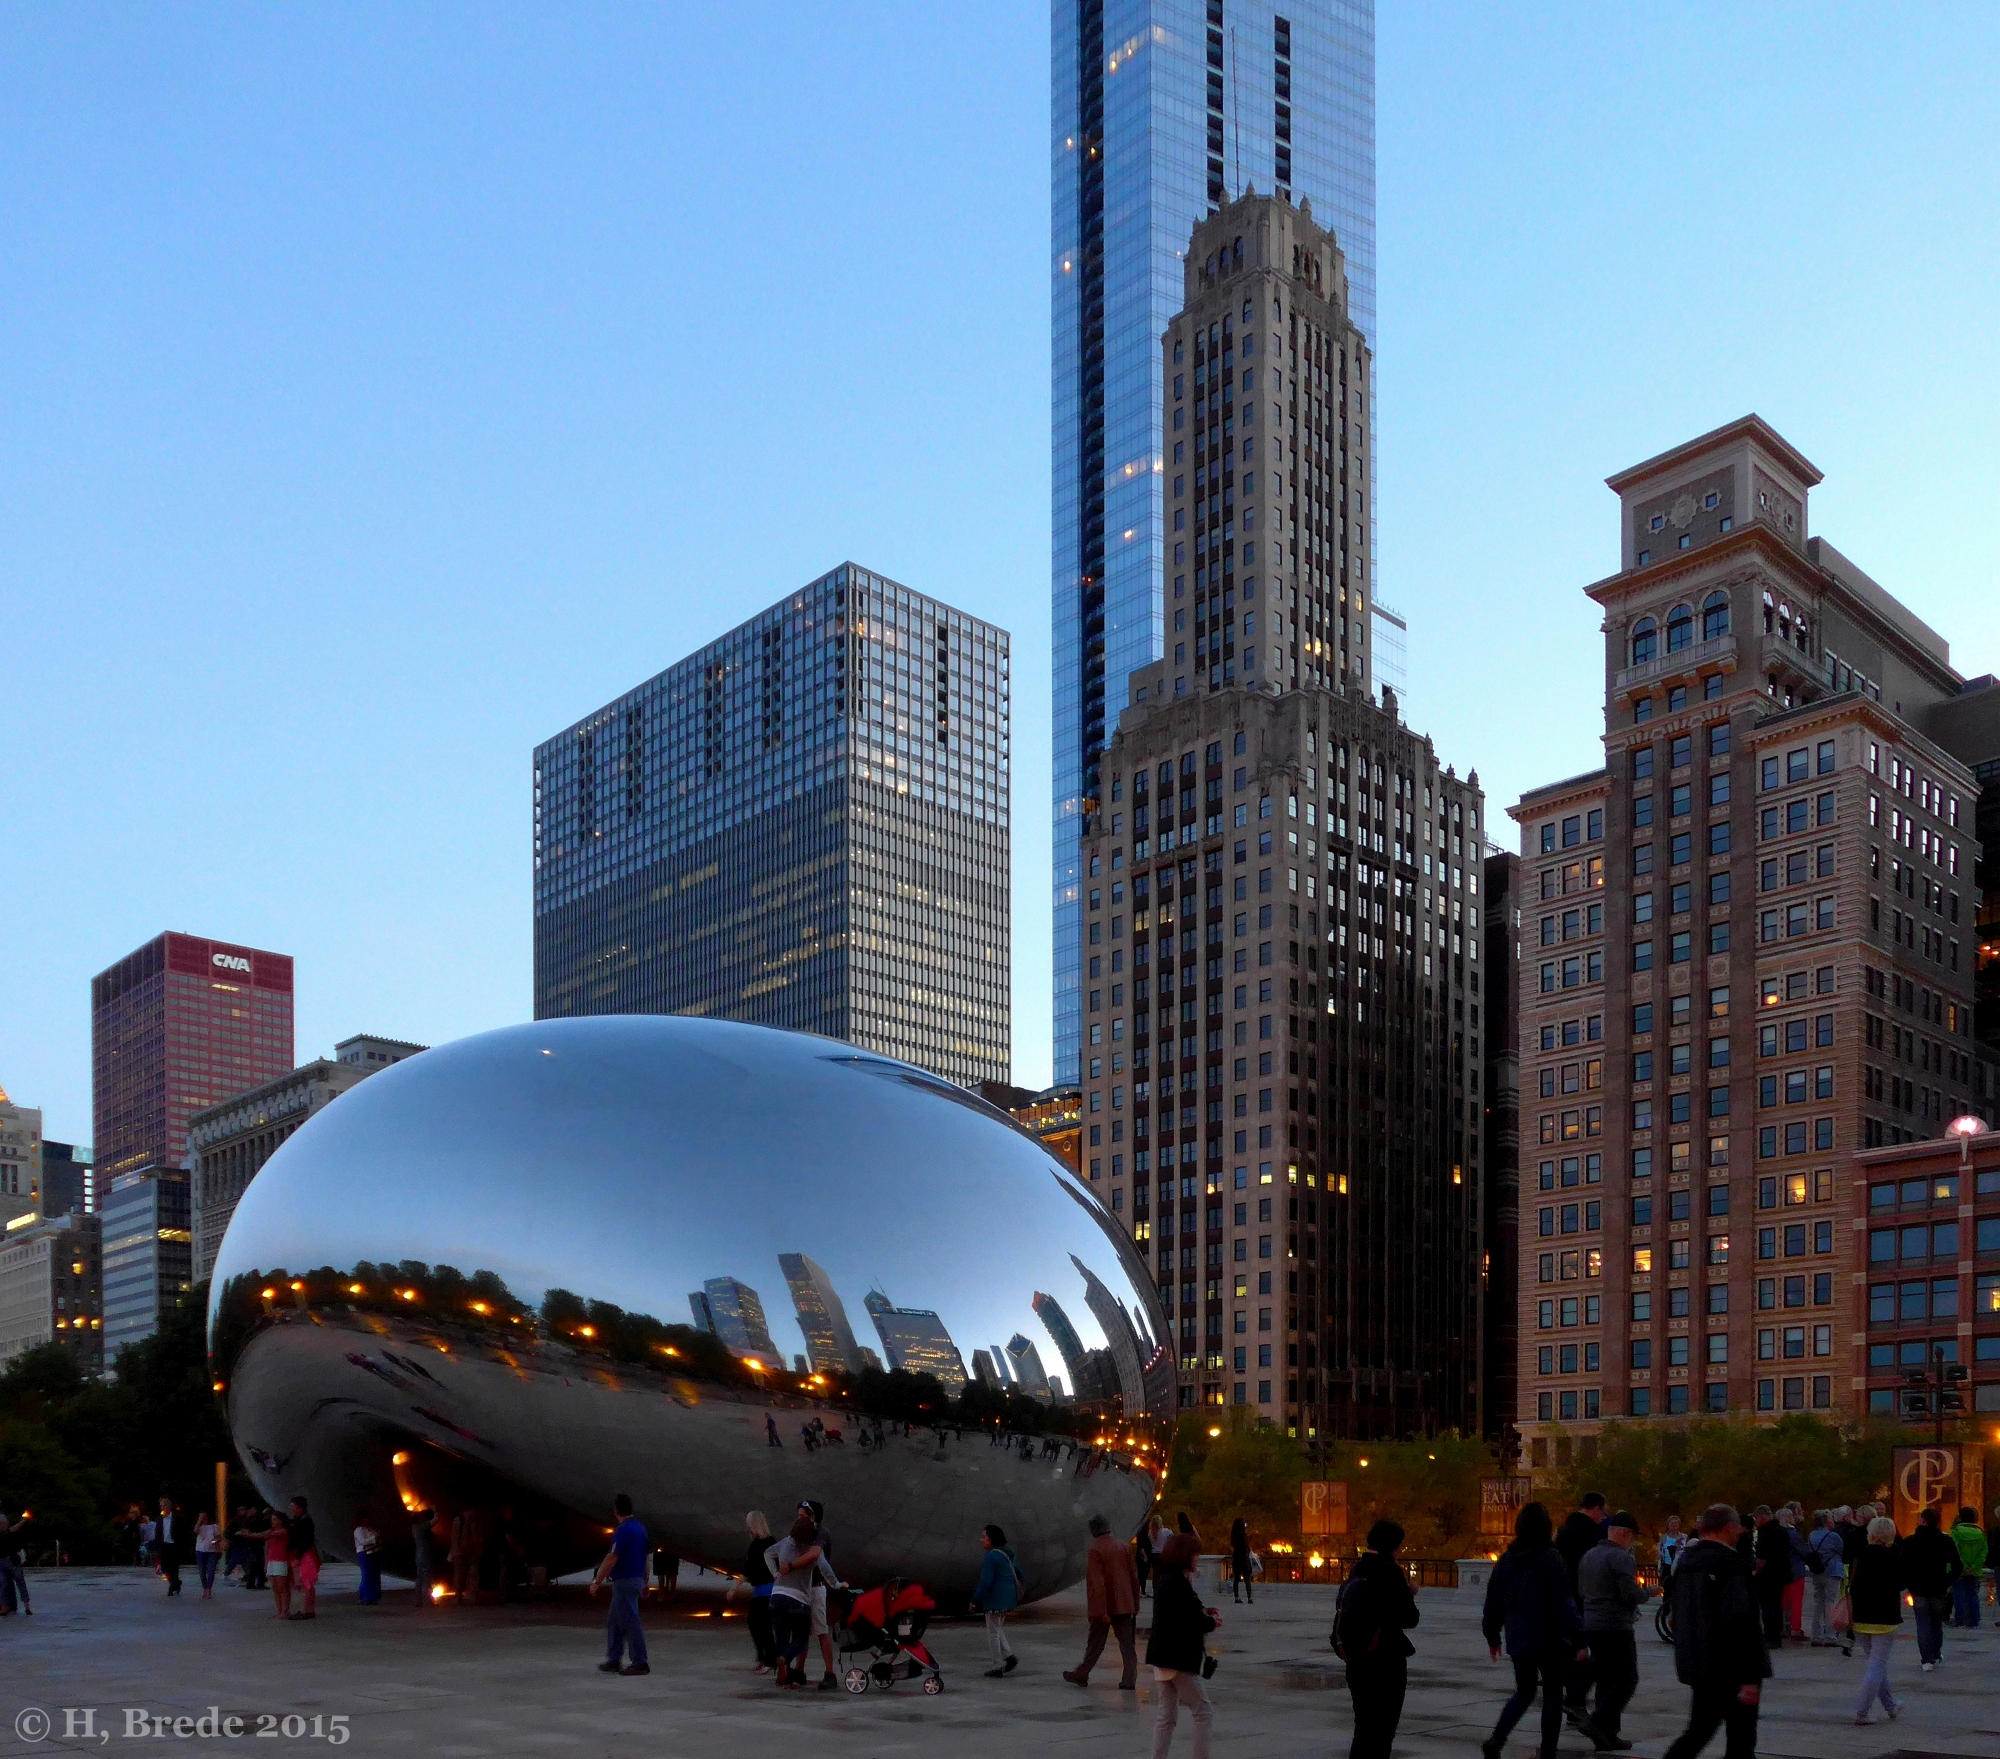 The Cloud gate in Chicago, USA